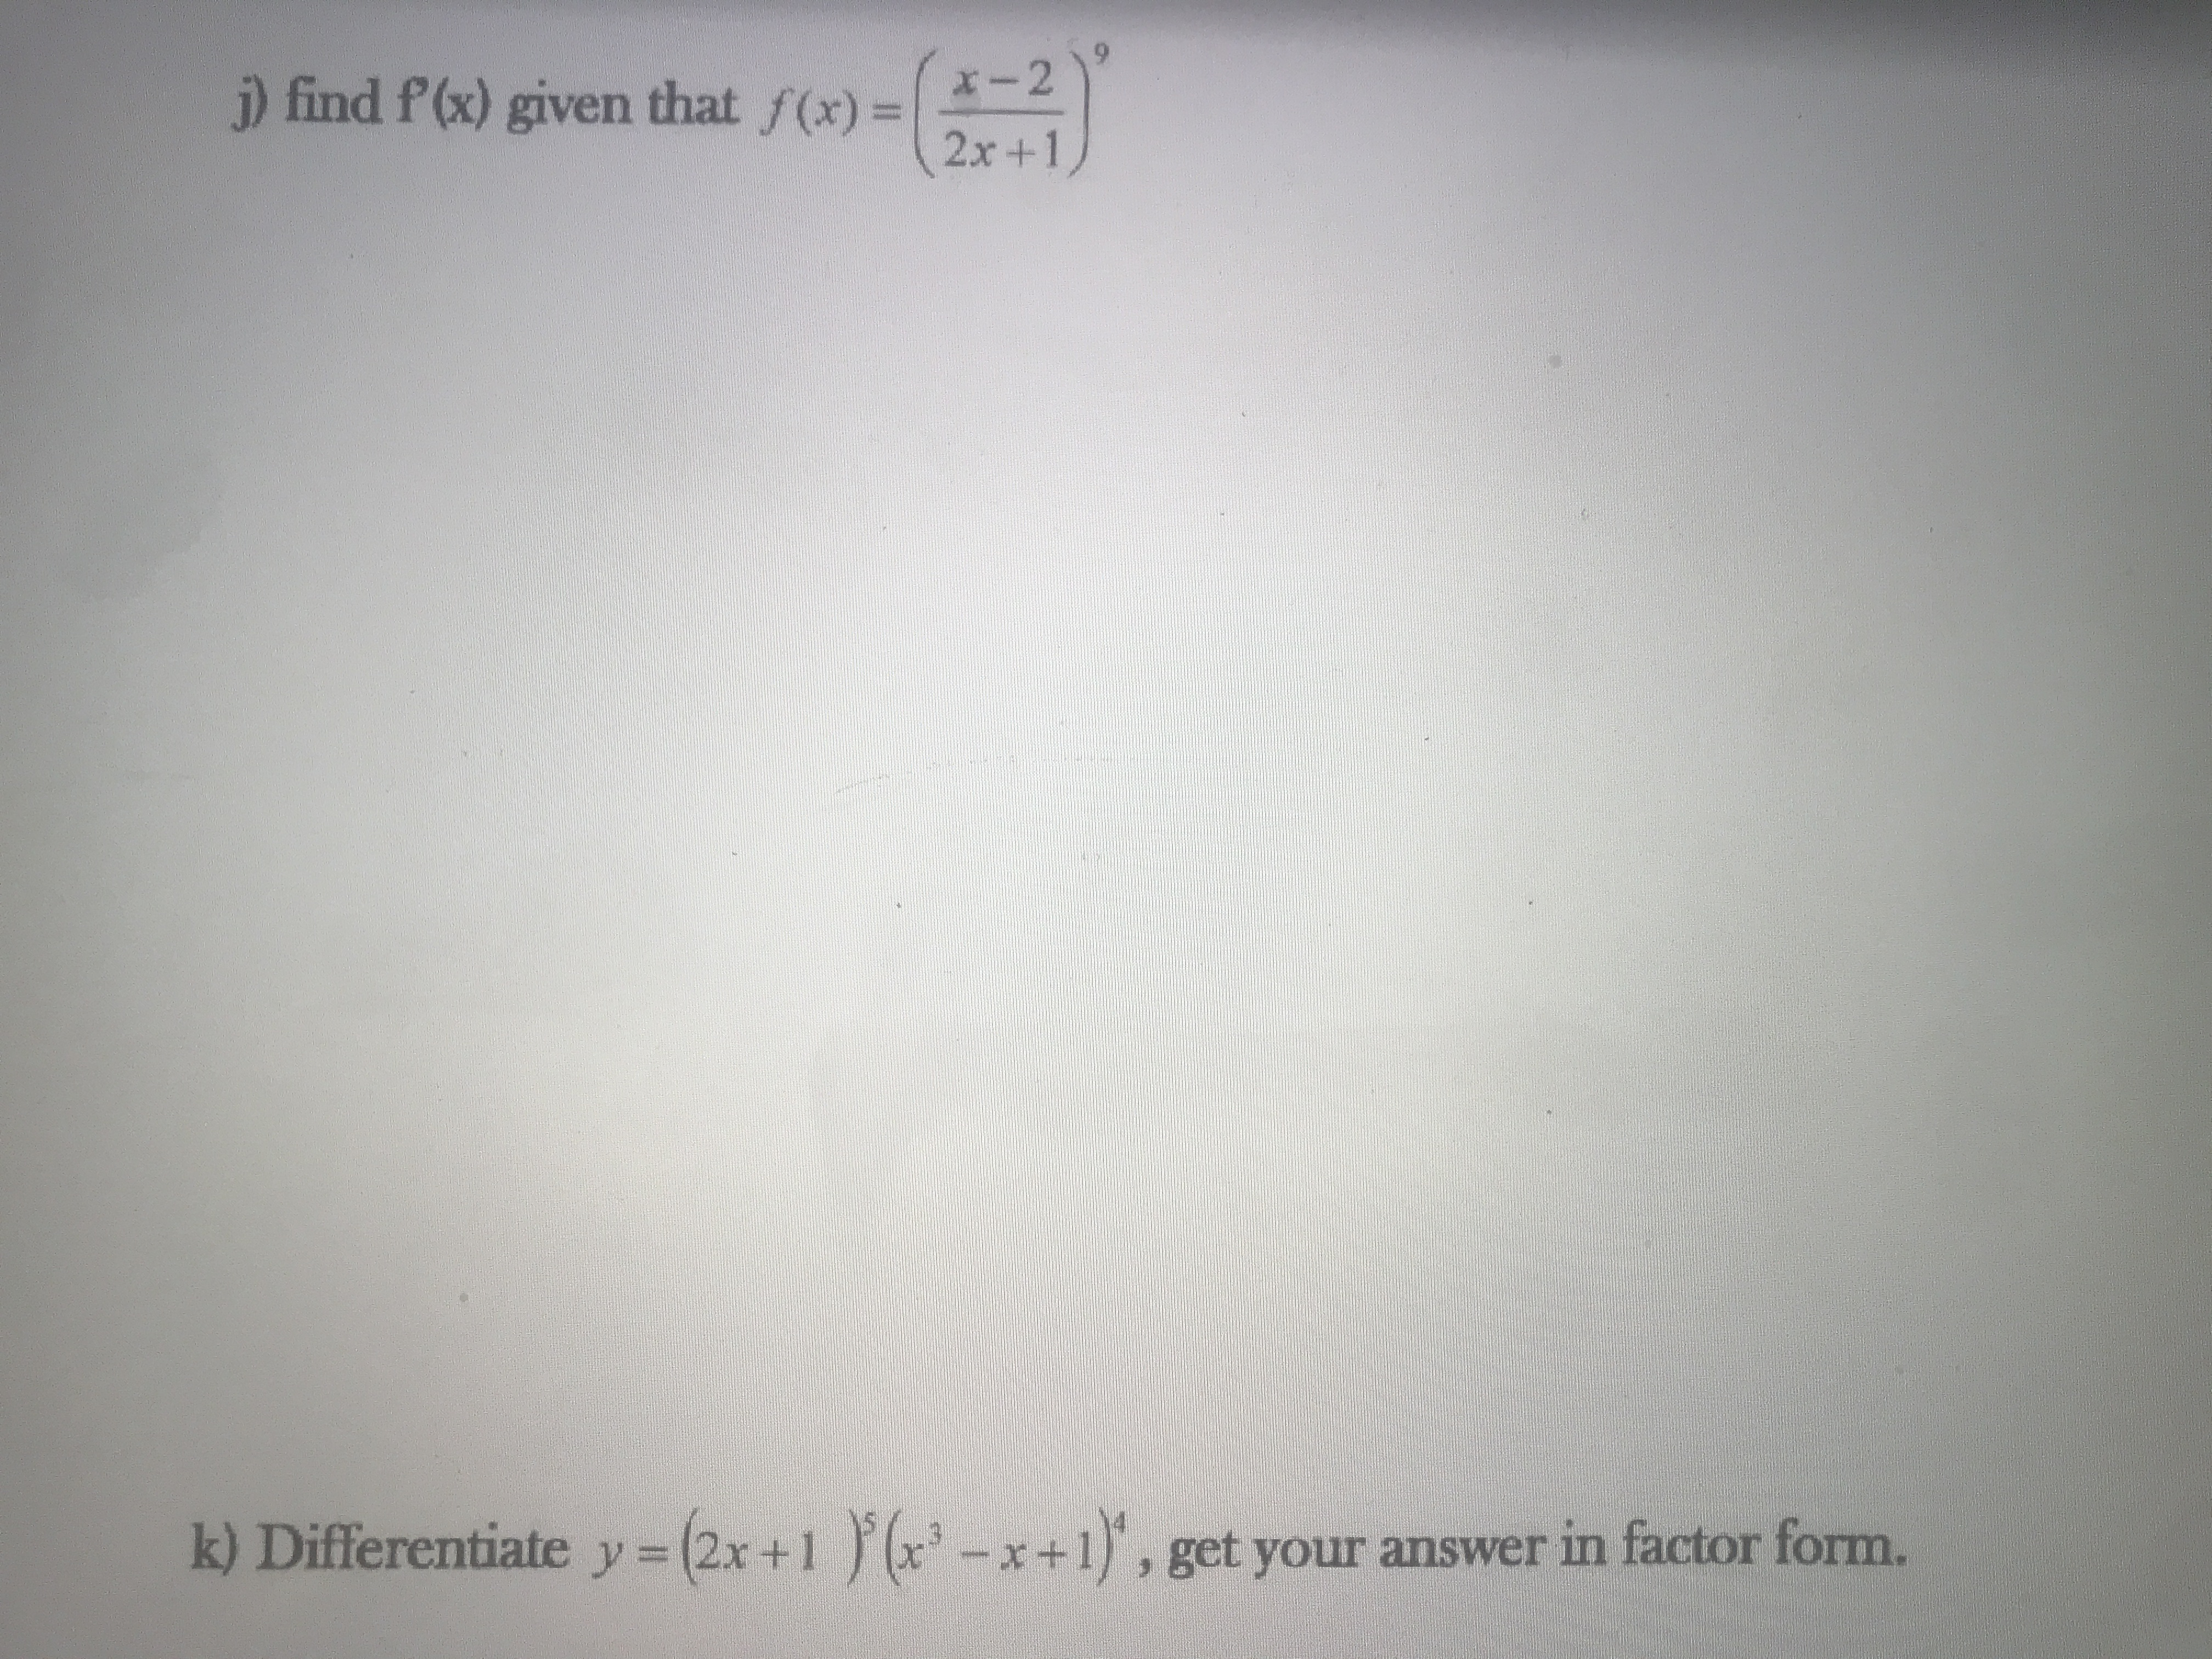 i) find f (x) given that f(x) = X-2 2x+1) k) Differentiate y= (2x+1 (x-x 1), get your answer in factor form.